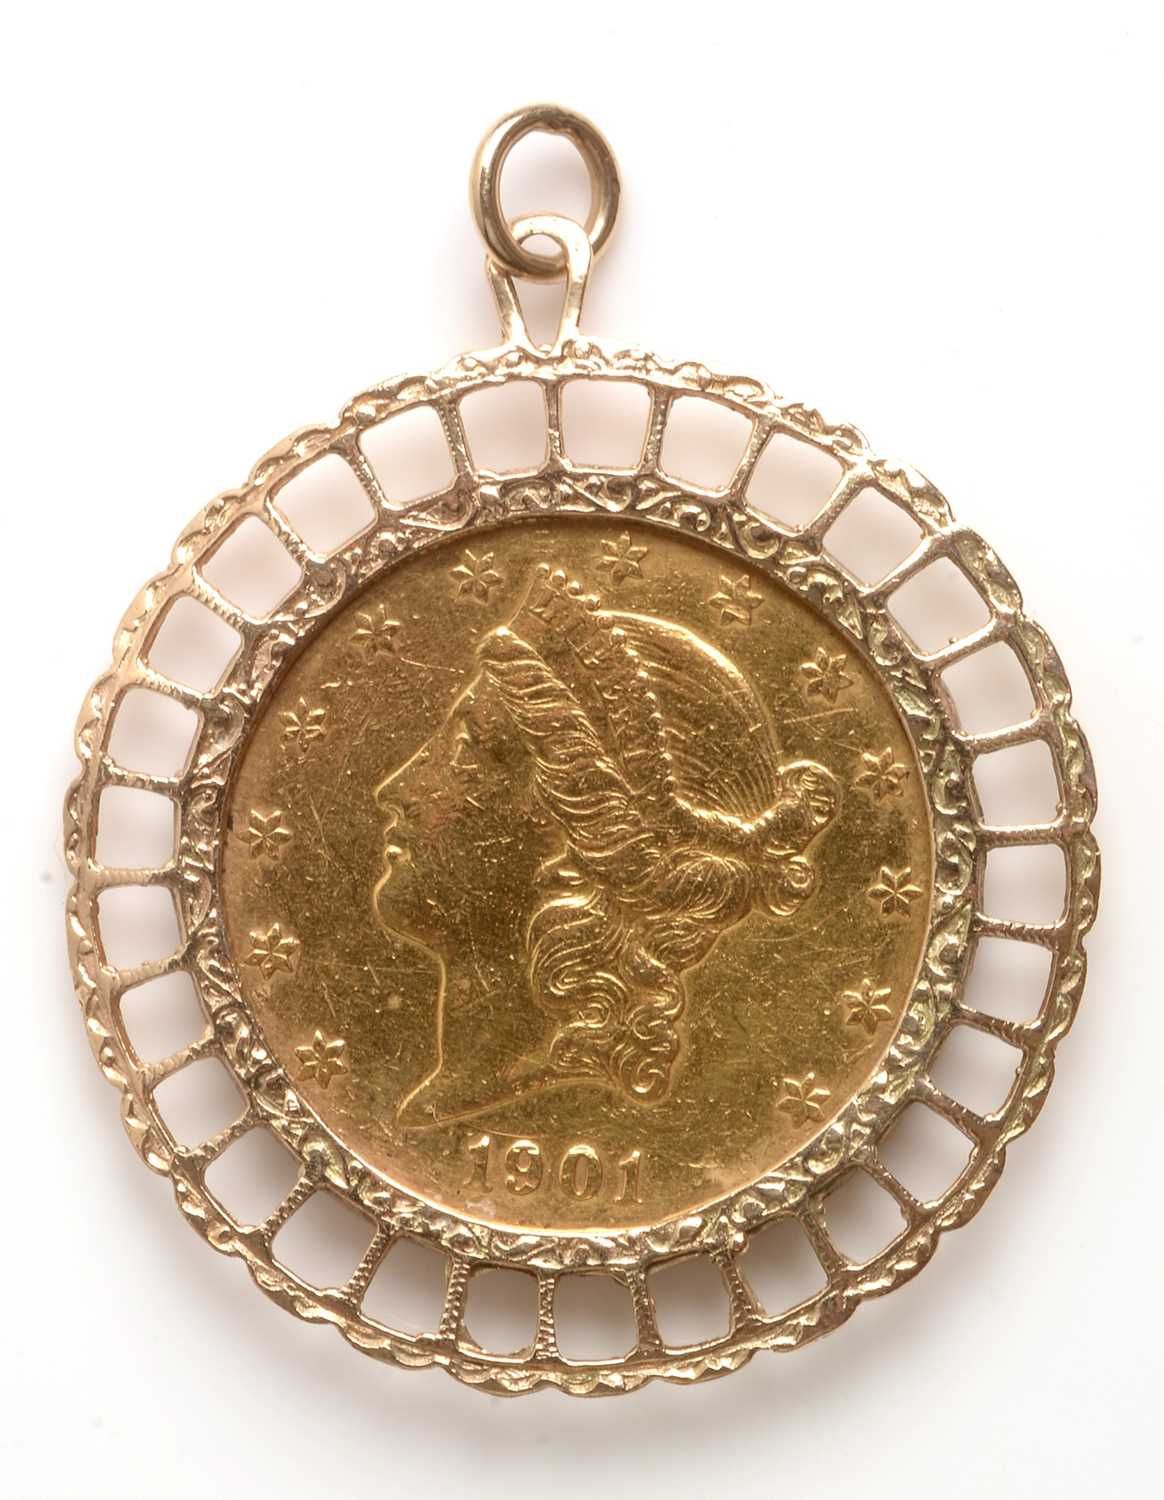 Lot 155 - Twenty Dollar pendant